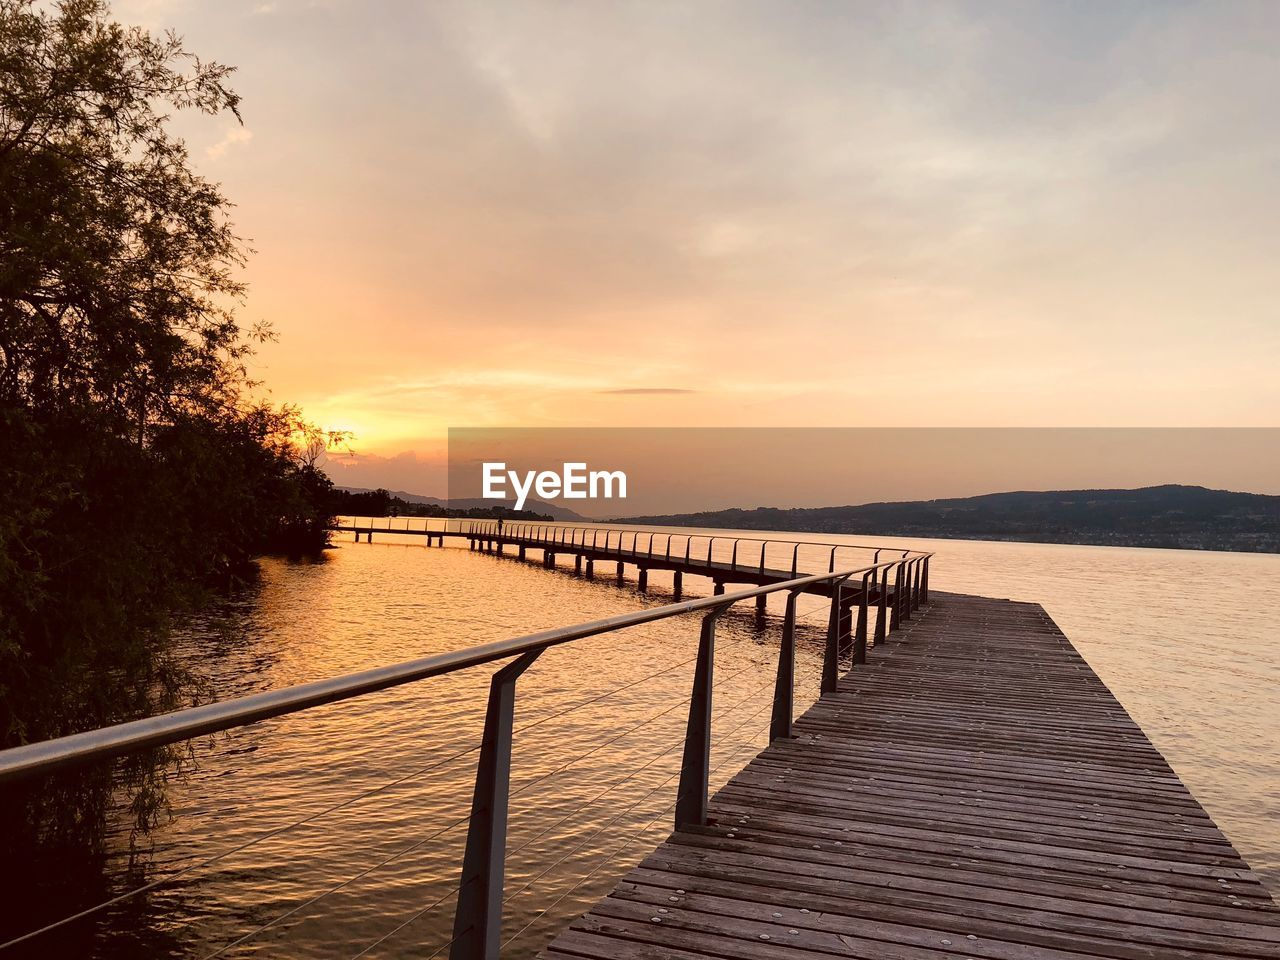 water, sky, sunset, scenics - nature, beauty in nature, tranquility, tranquil scene, nature, railing, cloud - sky, pier, no people, orange color, sea, tree, idyllic, outdoors, jetty, non-urban scene